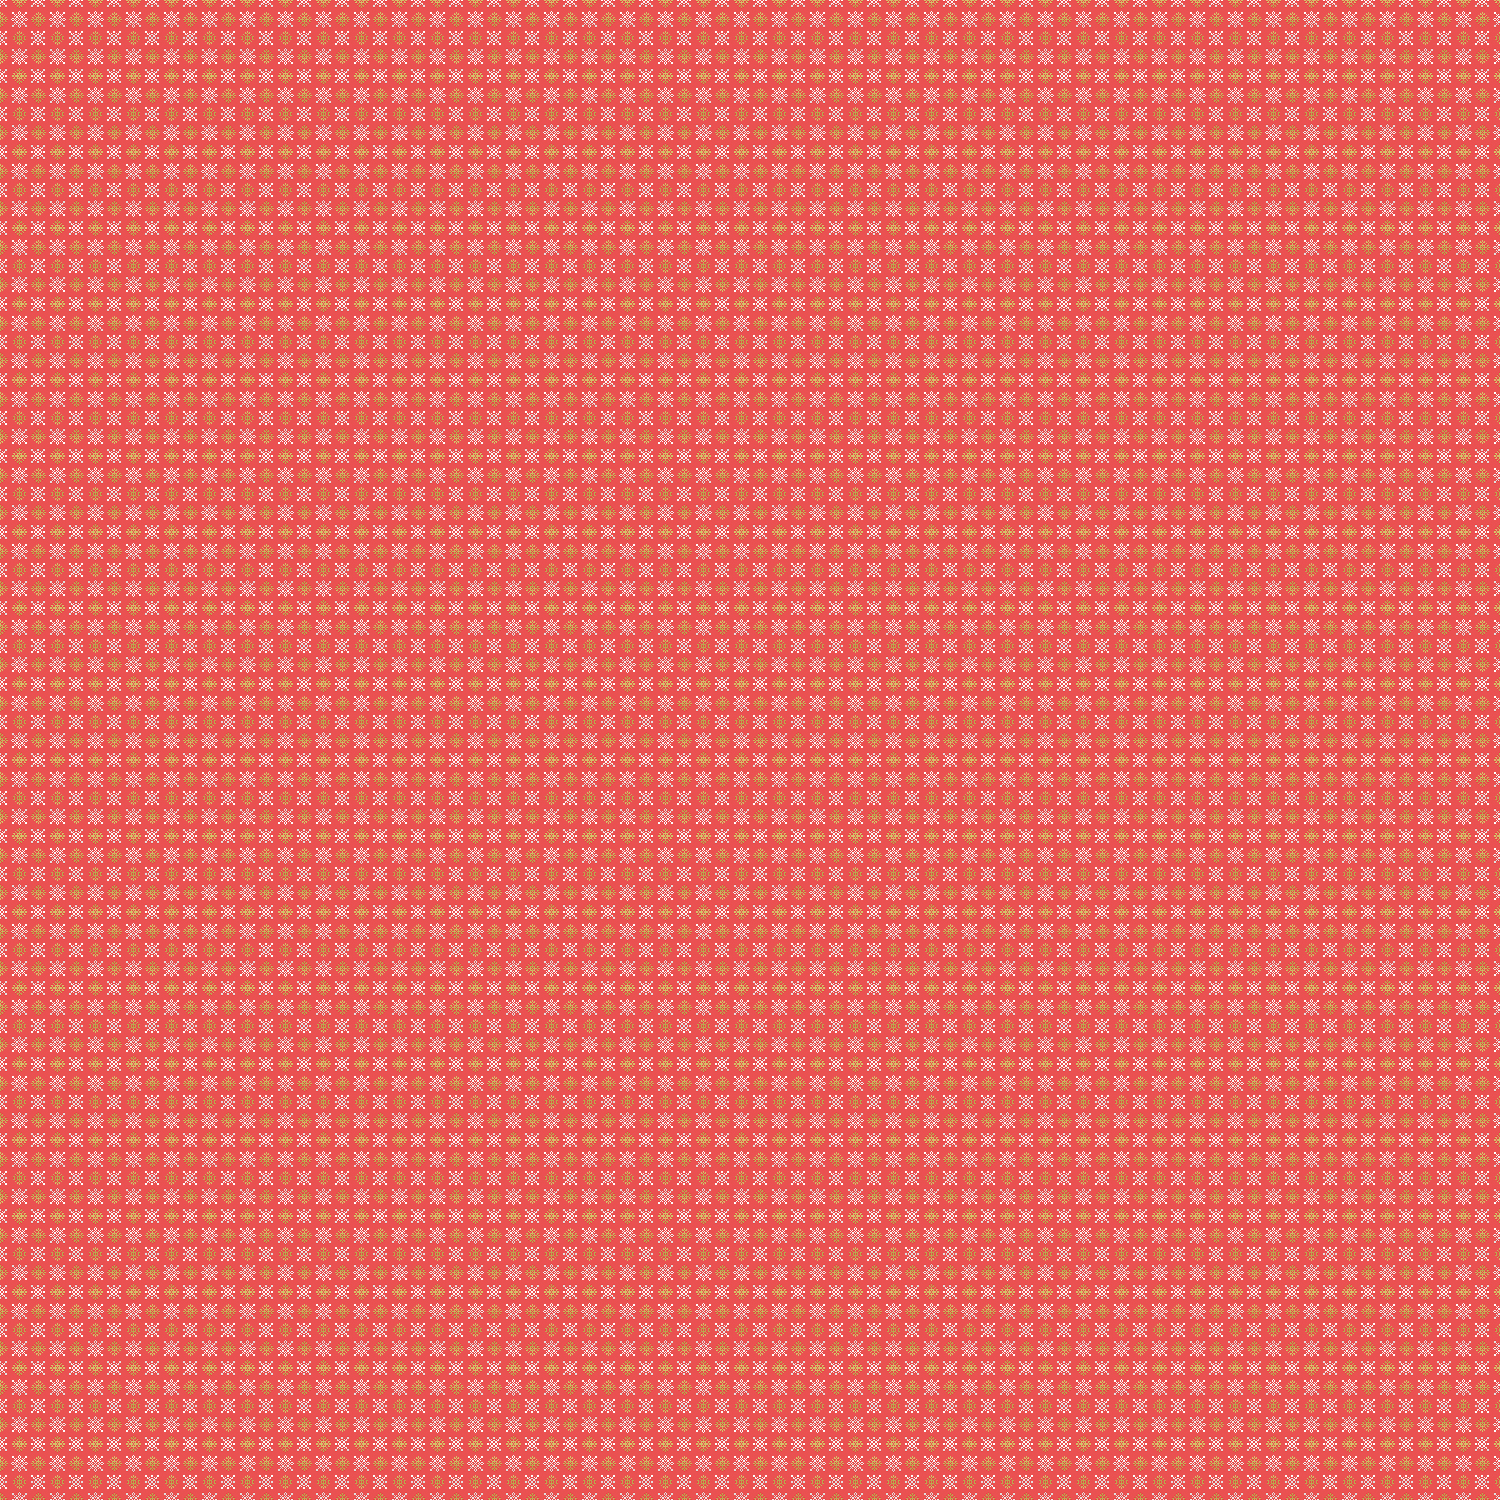 Free backgrounds christmas image wallpaper cave for Where can i find wallpaper